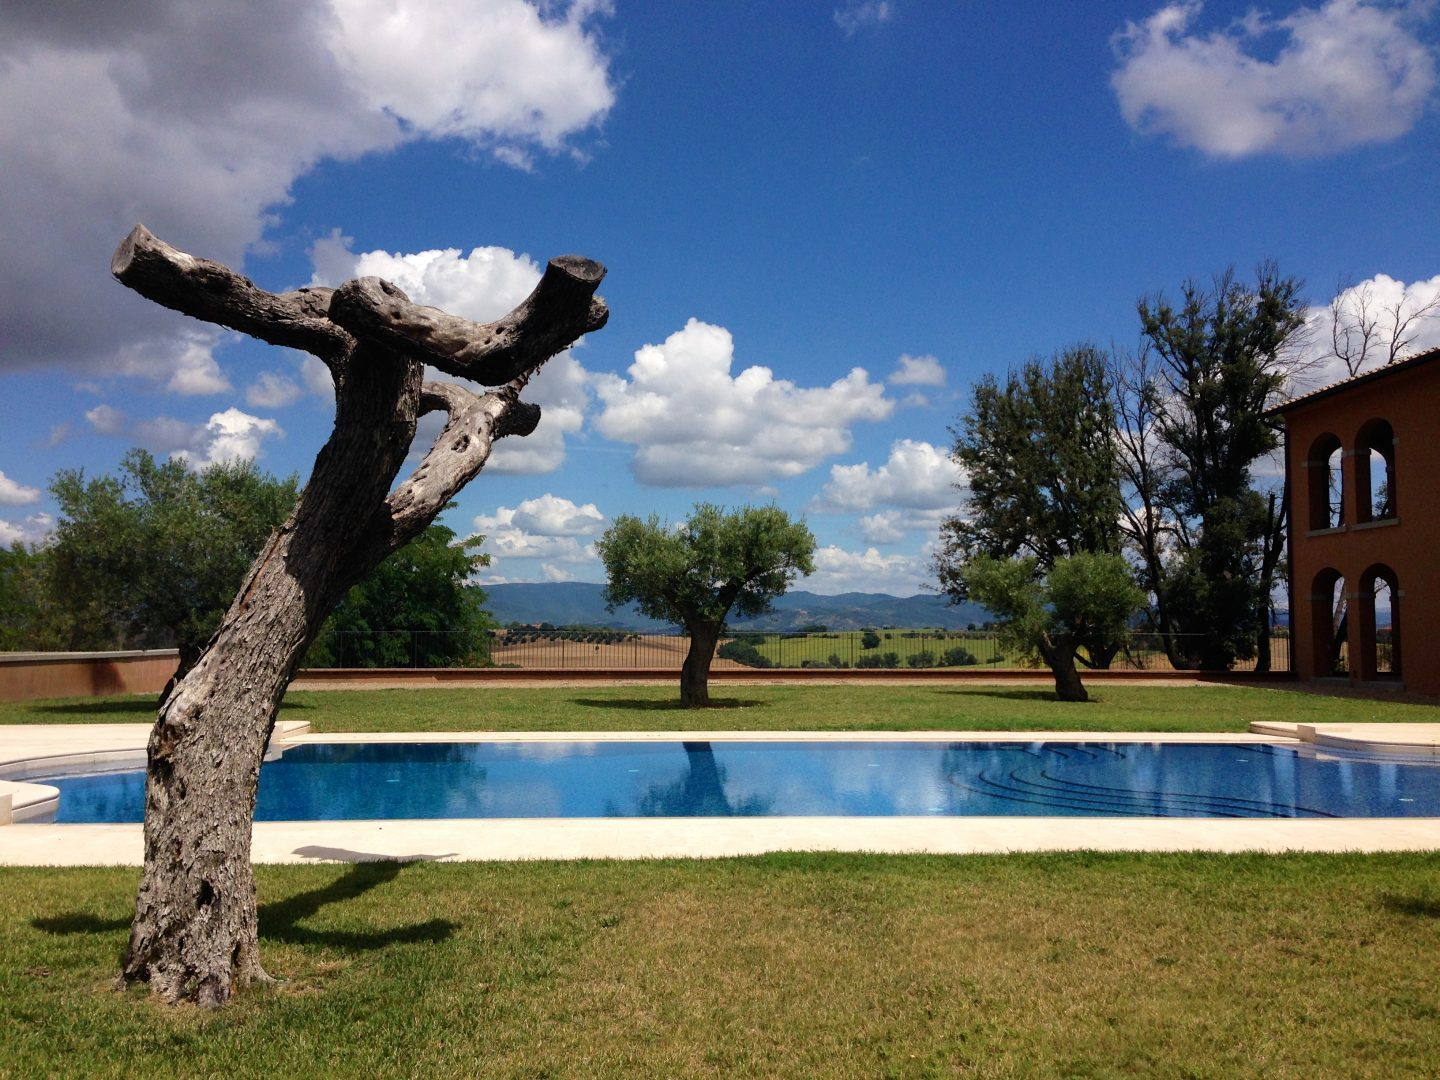 Chilling poolside at Villa Loggia winery in Cortona Tuscany.